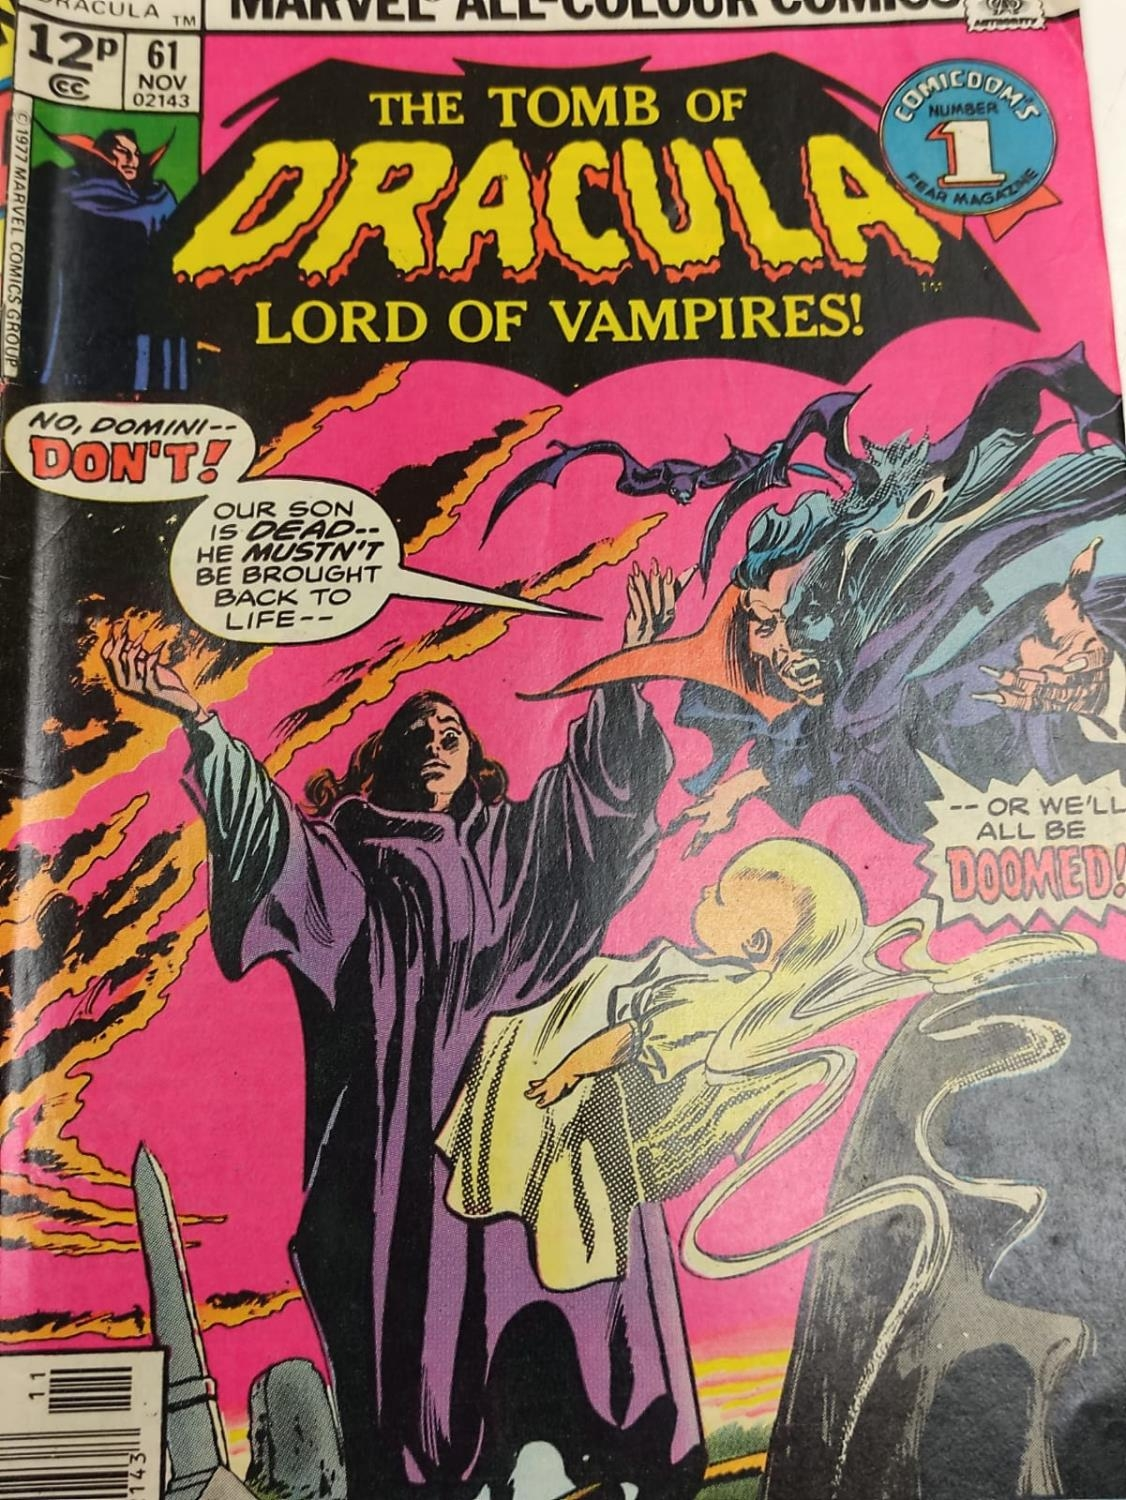 5 editions of Special Vintage Marvel Comics including 'The Tomb of Dracula'. - Image 6 of 15